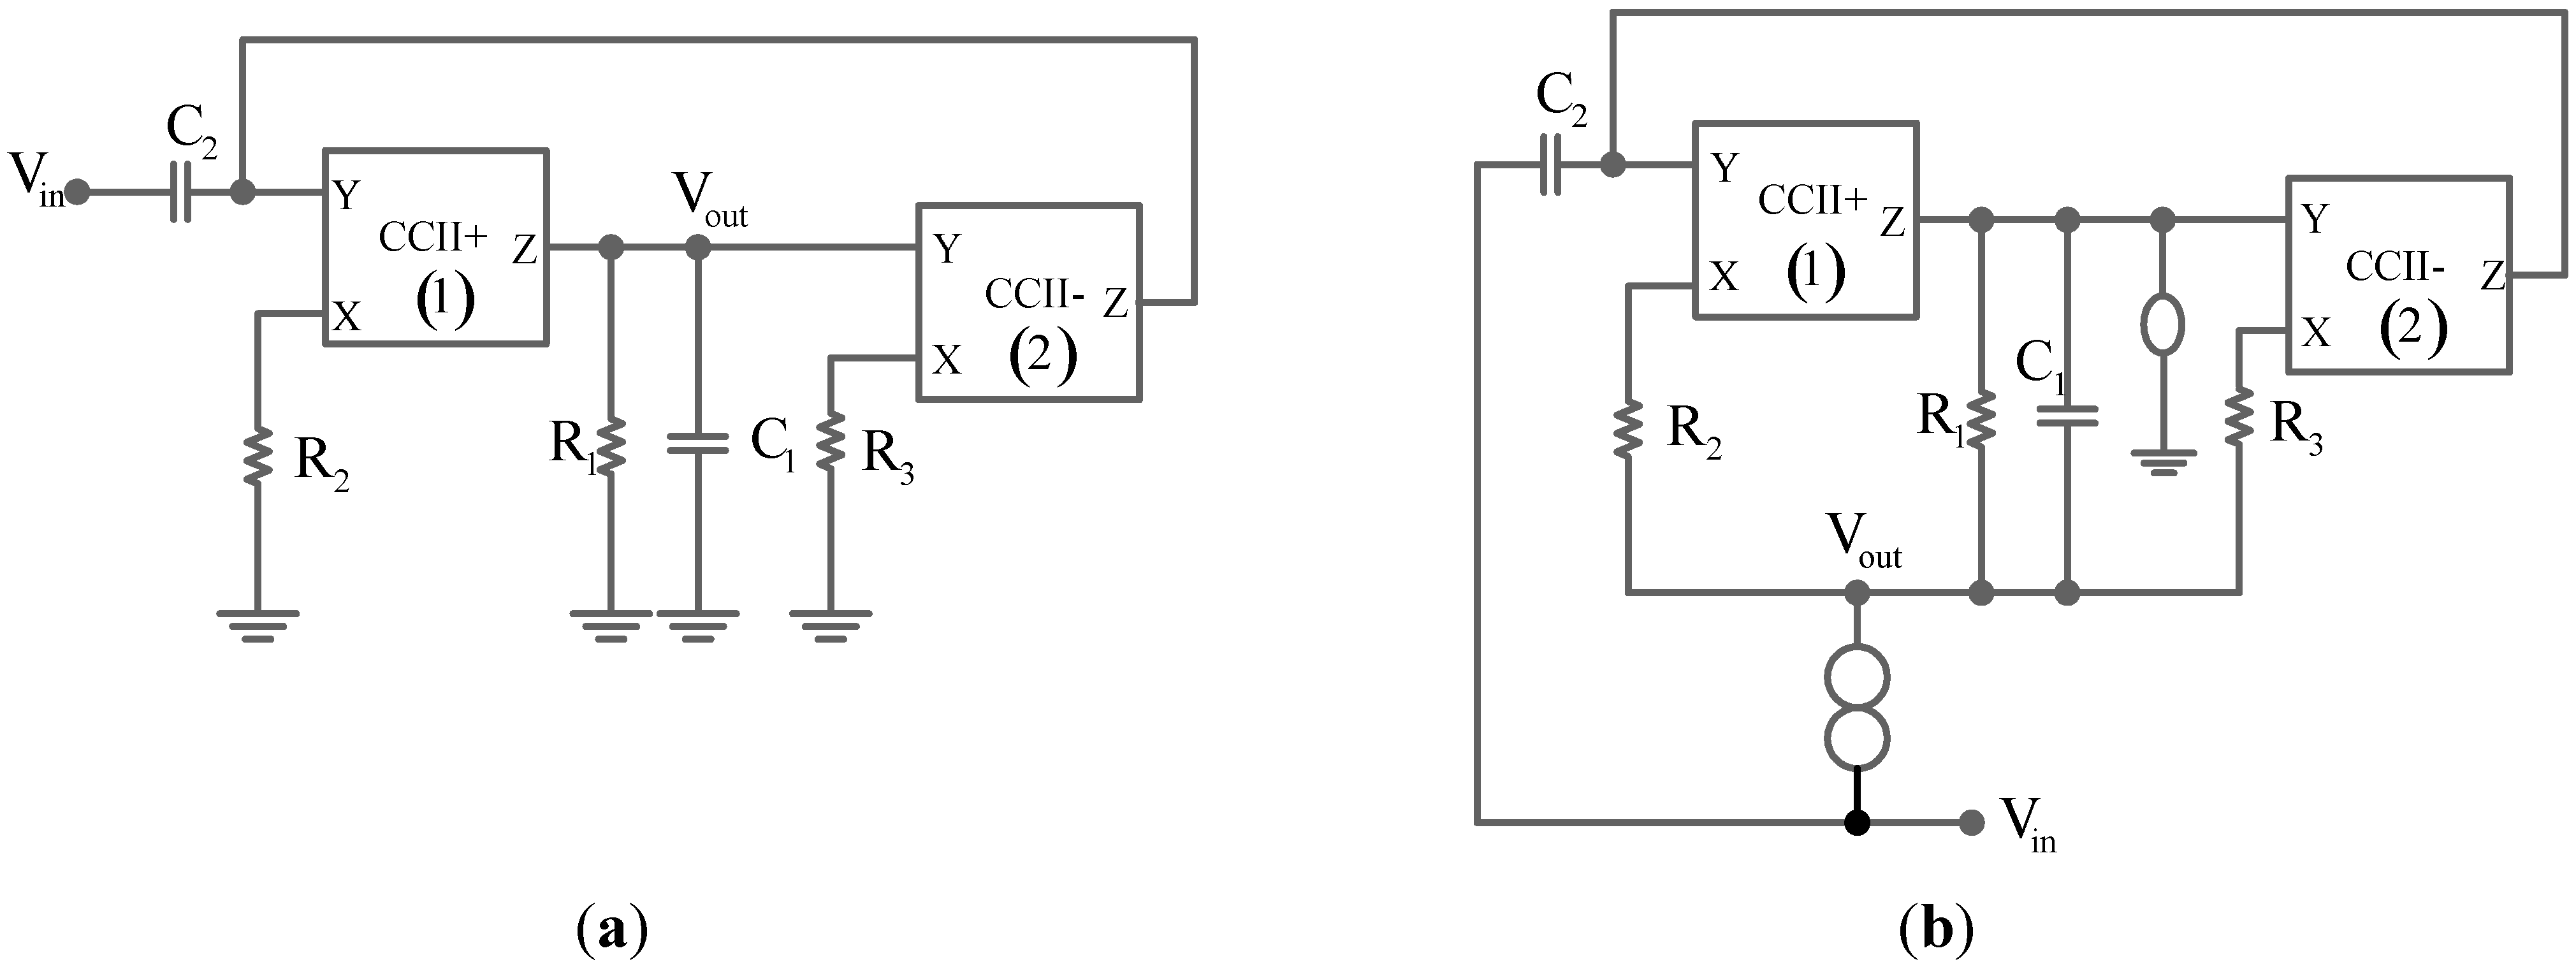 Applied Sciences Free Full Text Derivation Of Oscillators From Active Band Pass Filter Circuit Diagram Applsci 04 00482 G004 1024